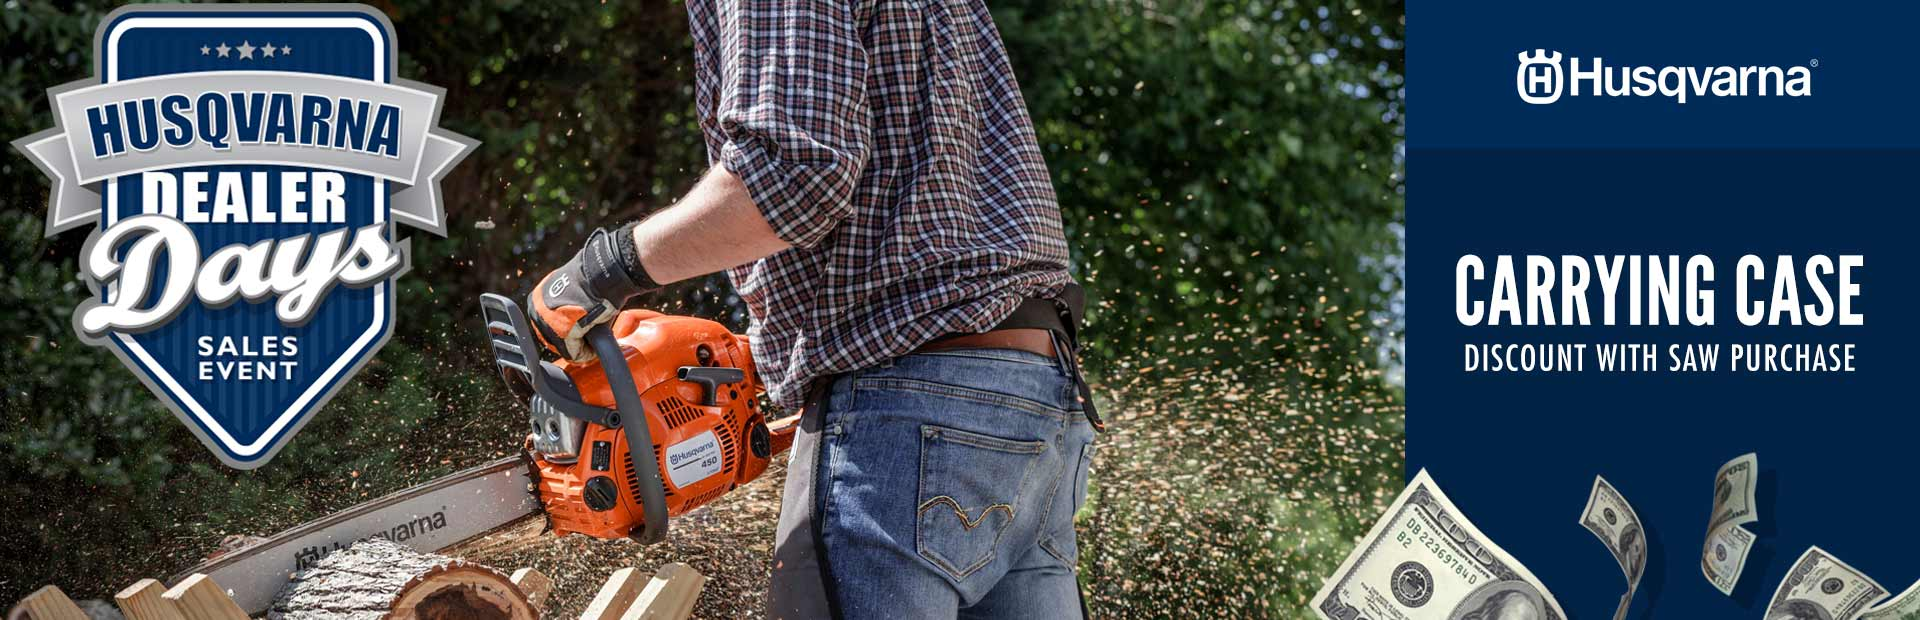 Husqvarna: Carrying Case Discount With Saw Purchase